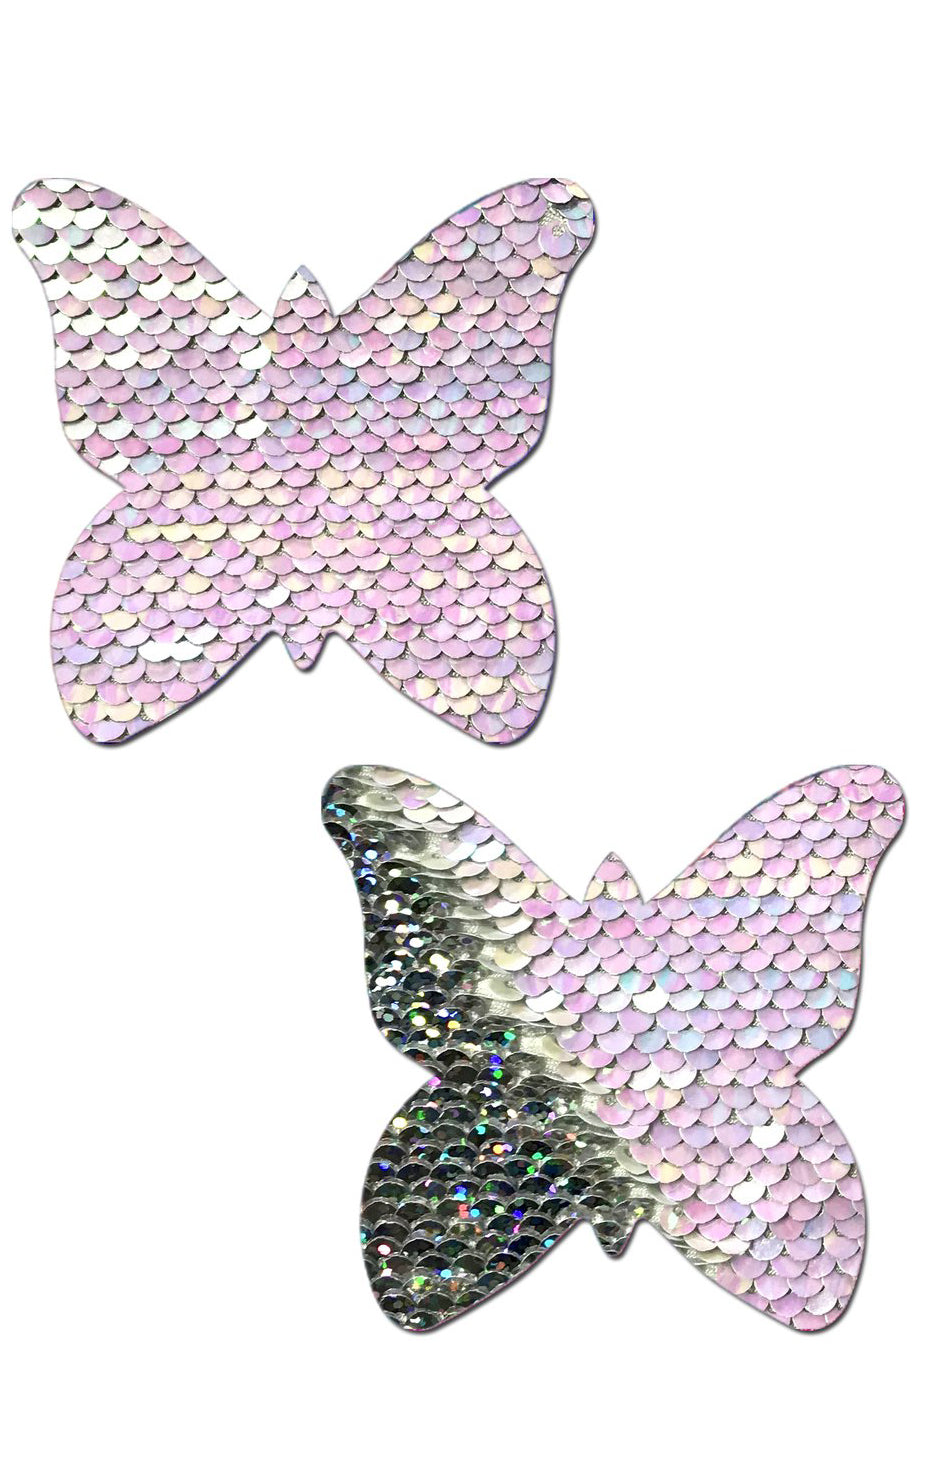 Pastease: J. Valentine Pearl to Silver Flip Sequin Pasties - Chynna Dolls Swimwear